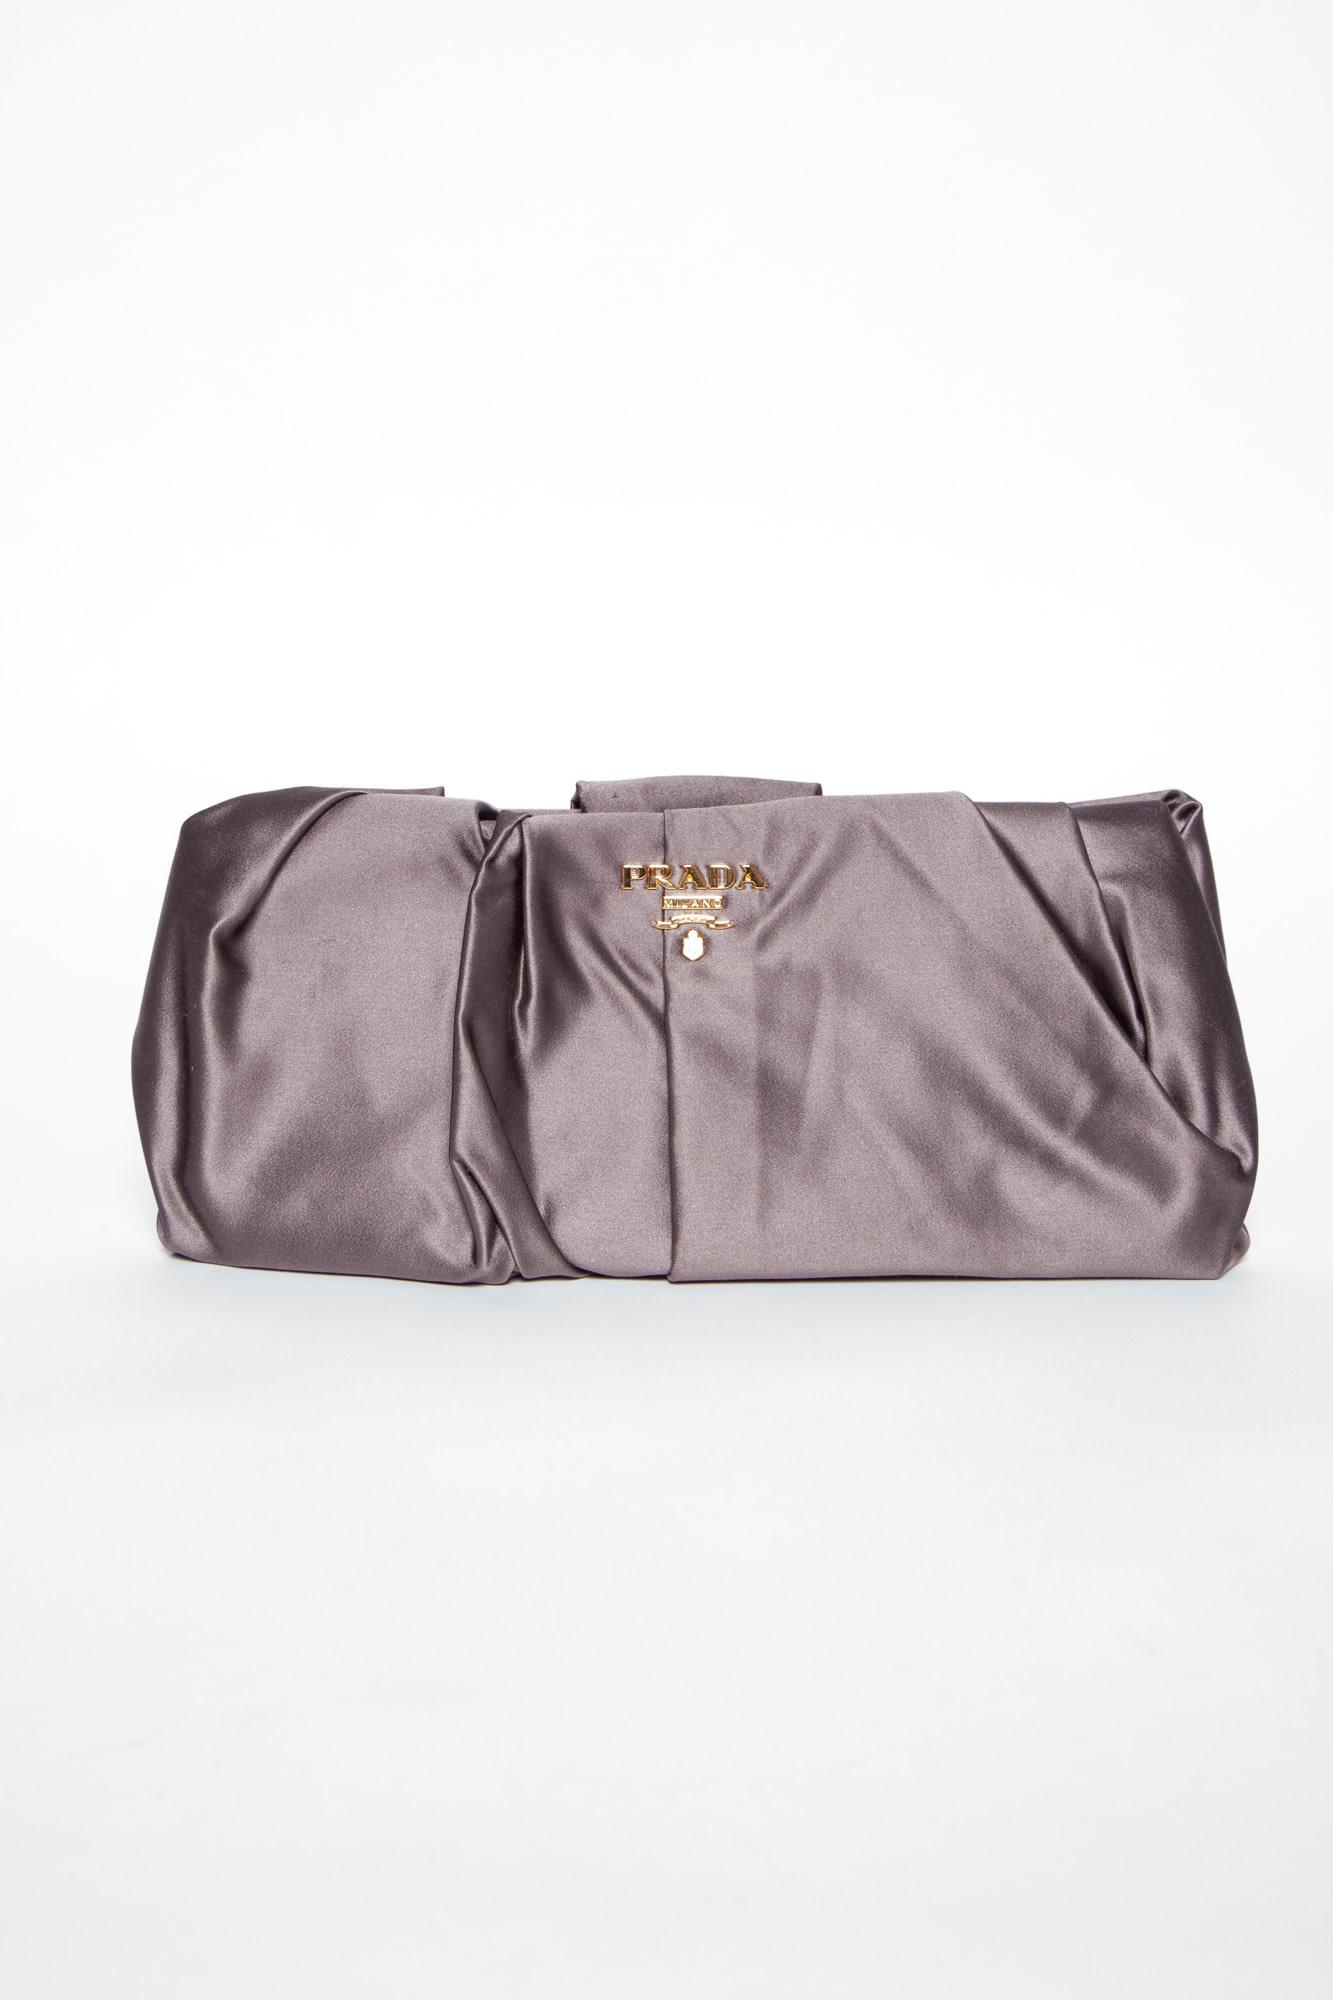 Prada GREY SATIN CLUTCH